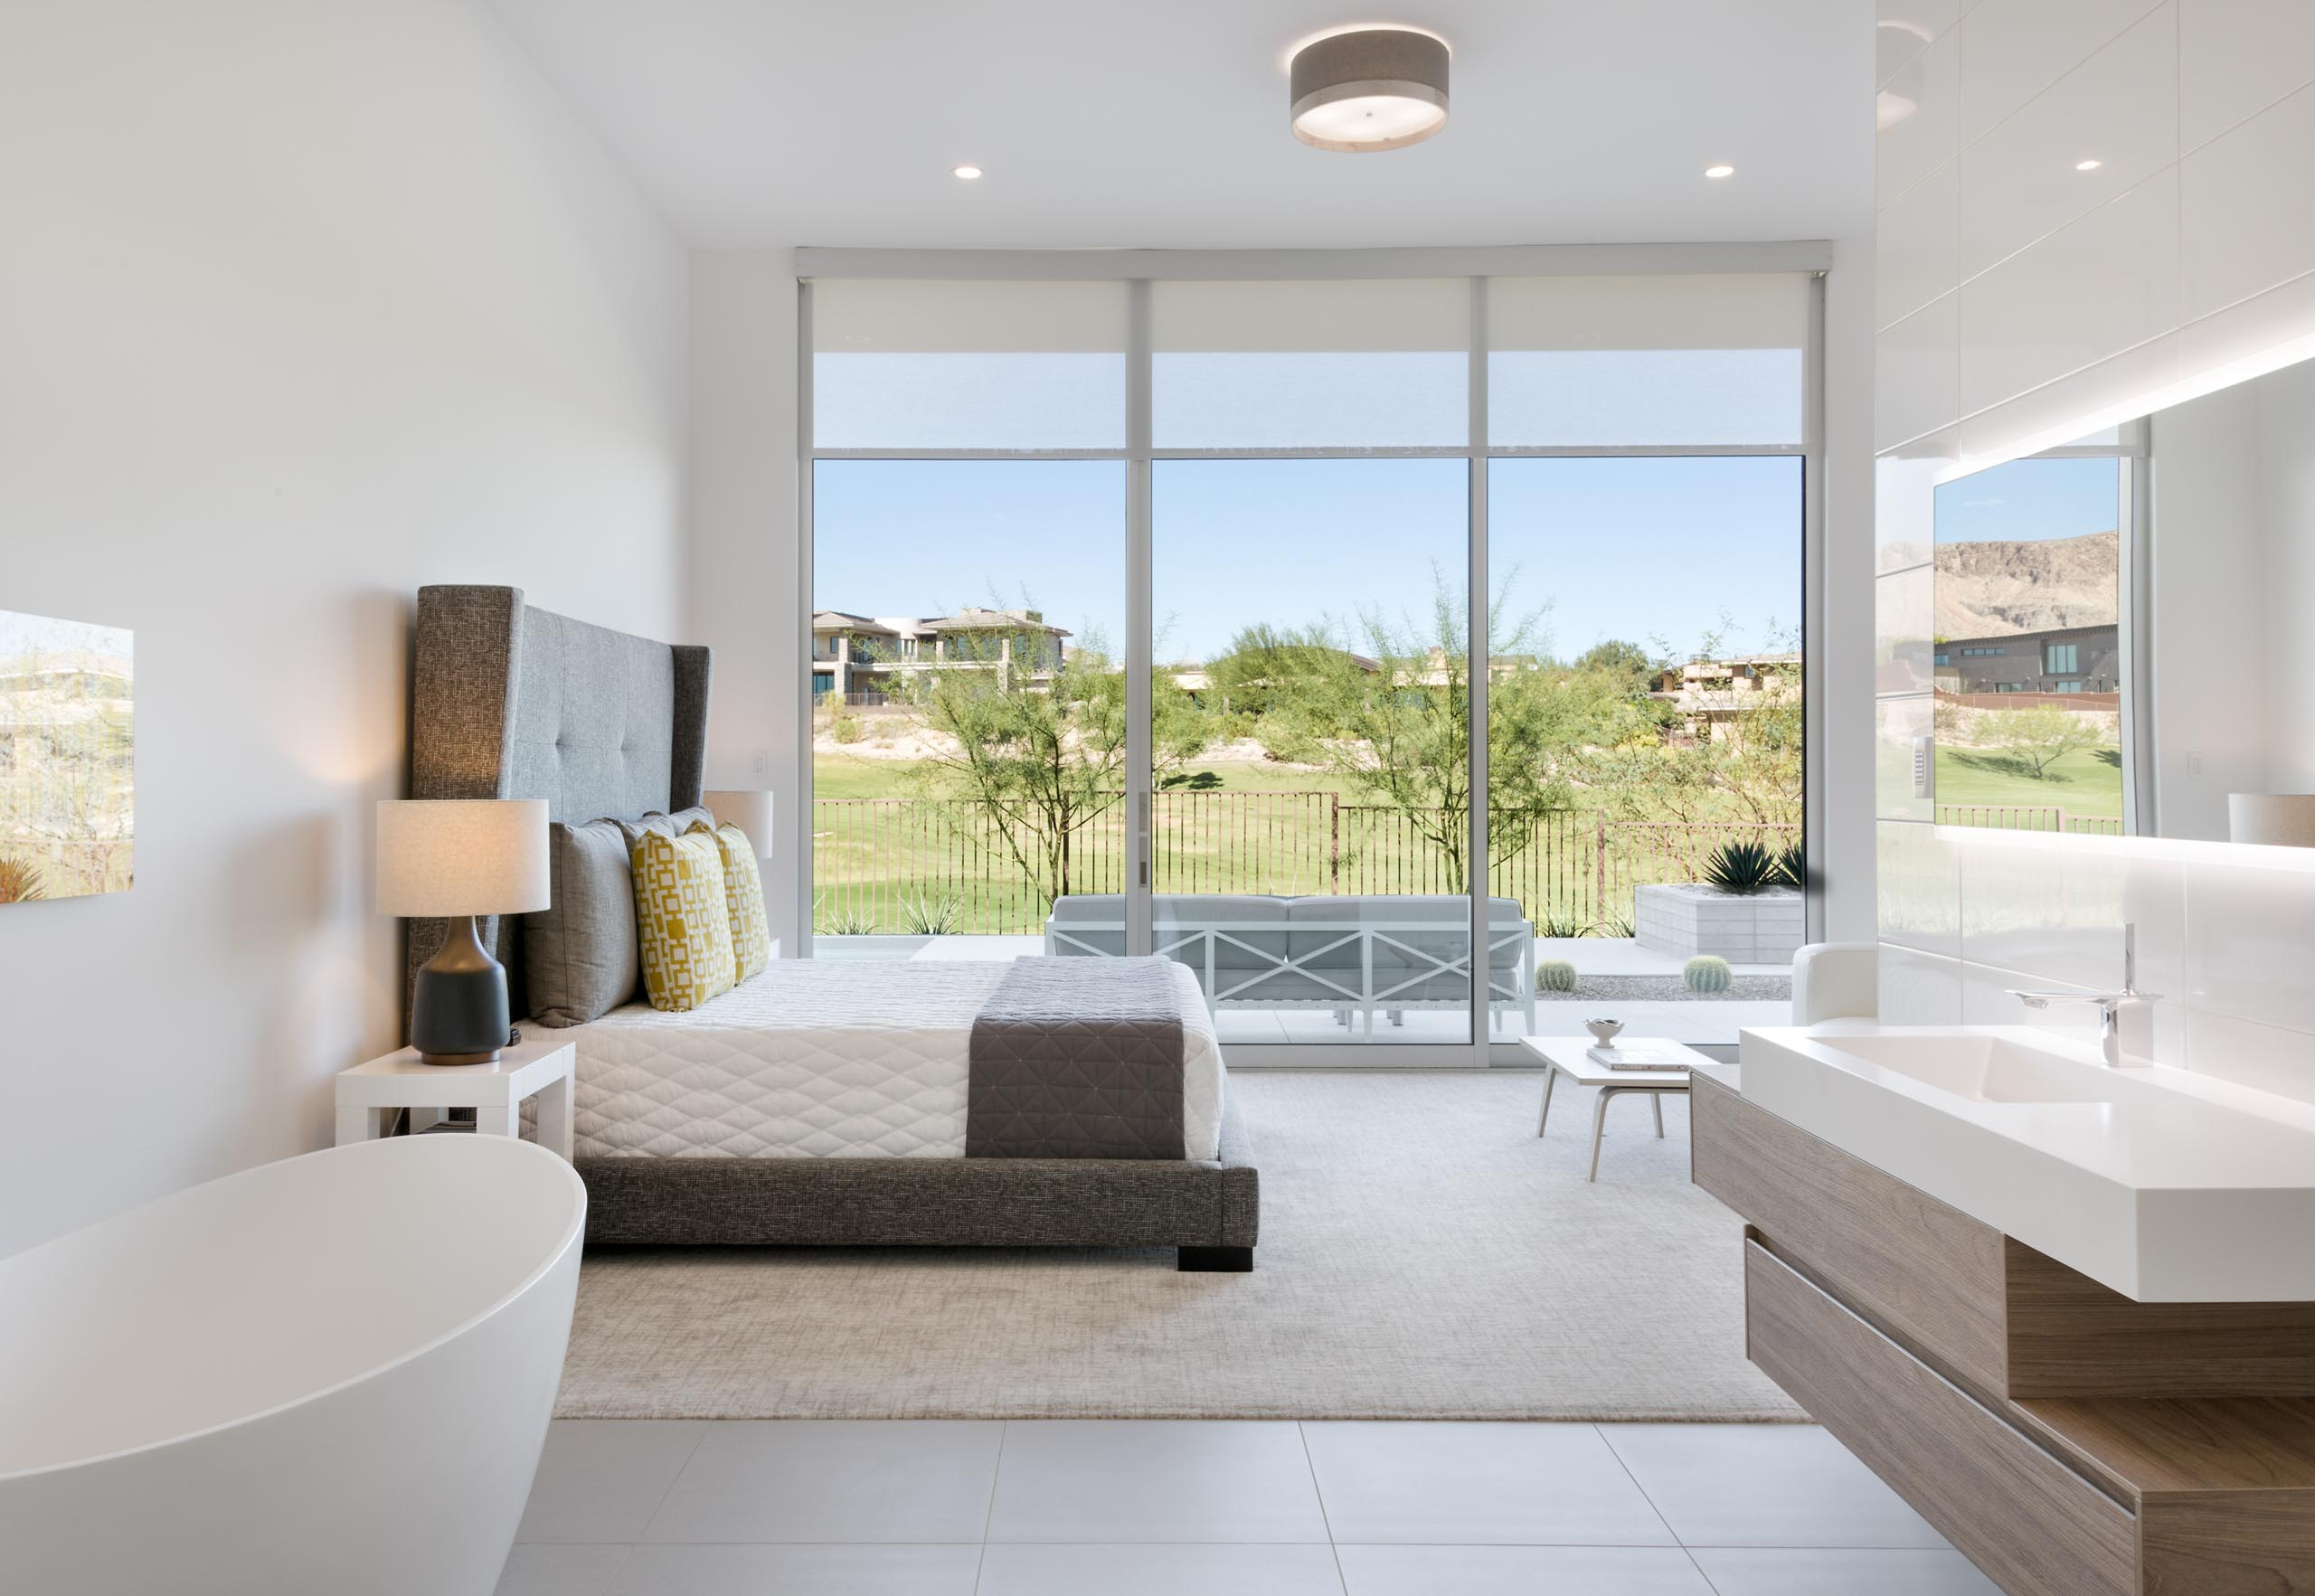 Shades of White's large moving walls of glass flood interior spaces with natural light.